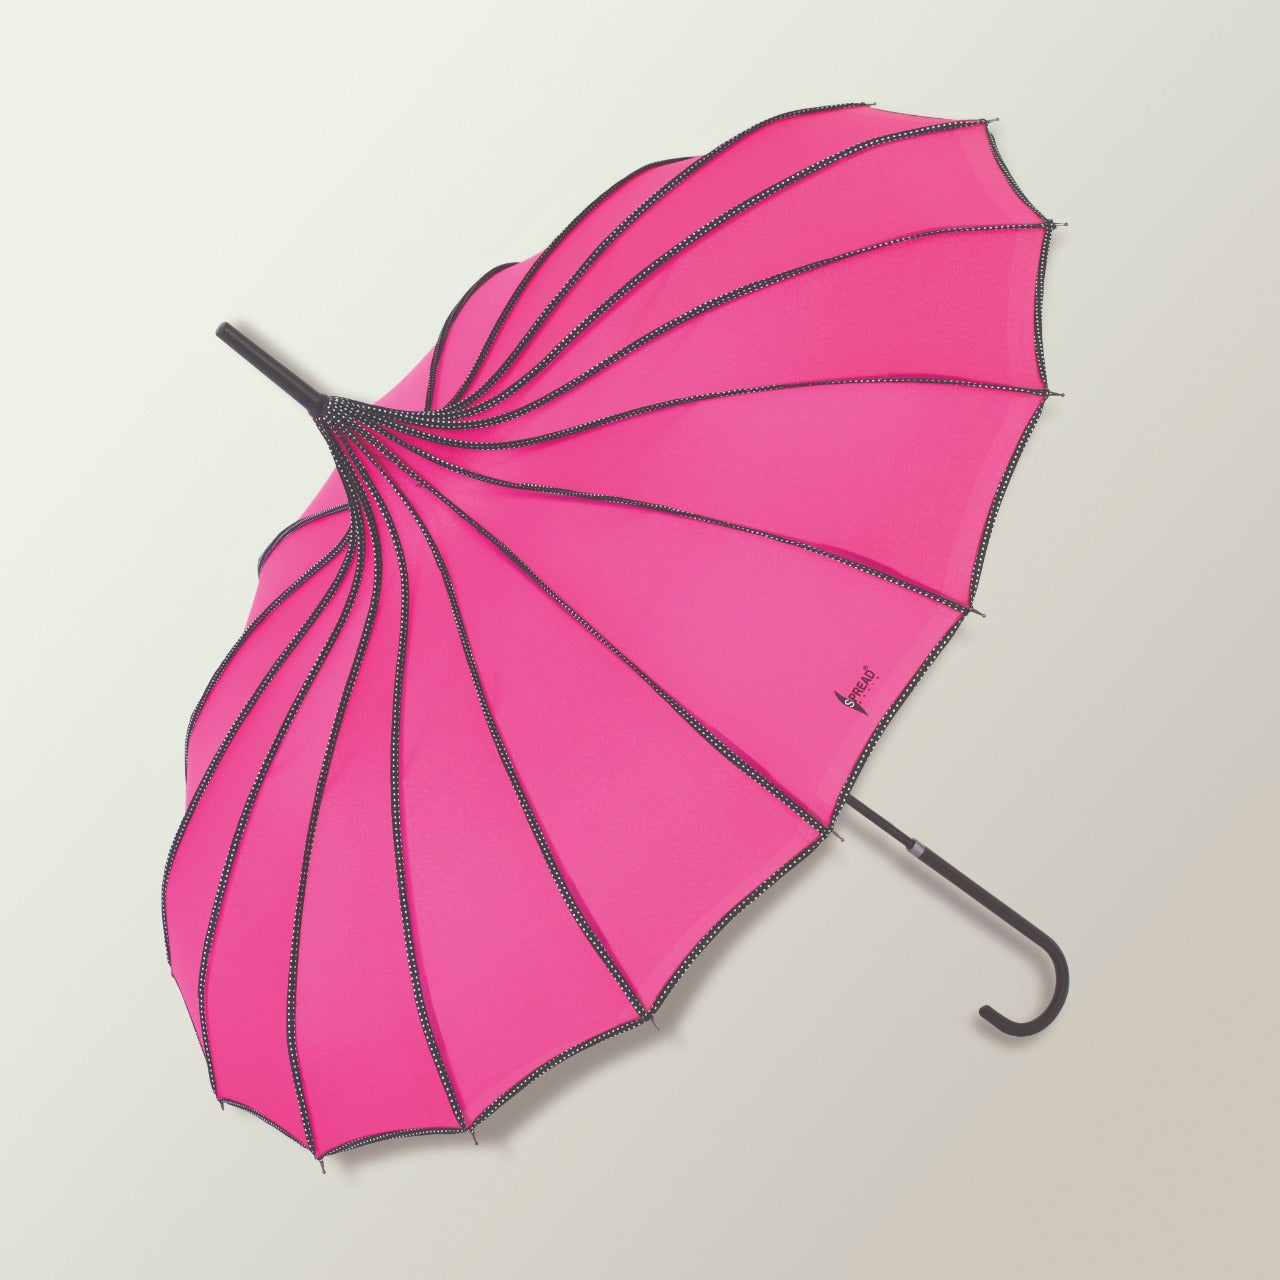 Pagoda Shaped Long Umbrella - Pink